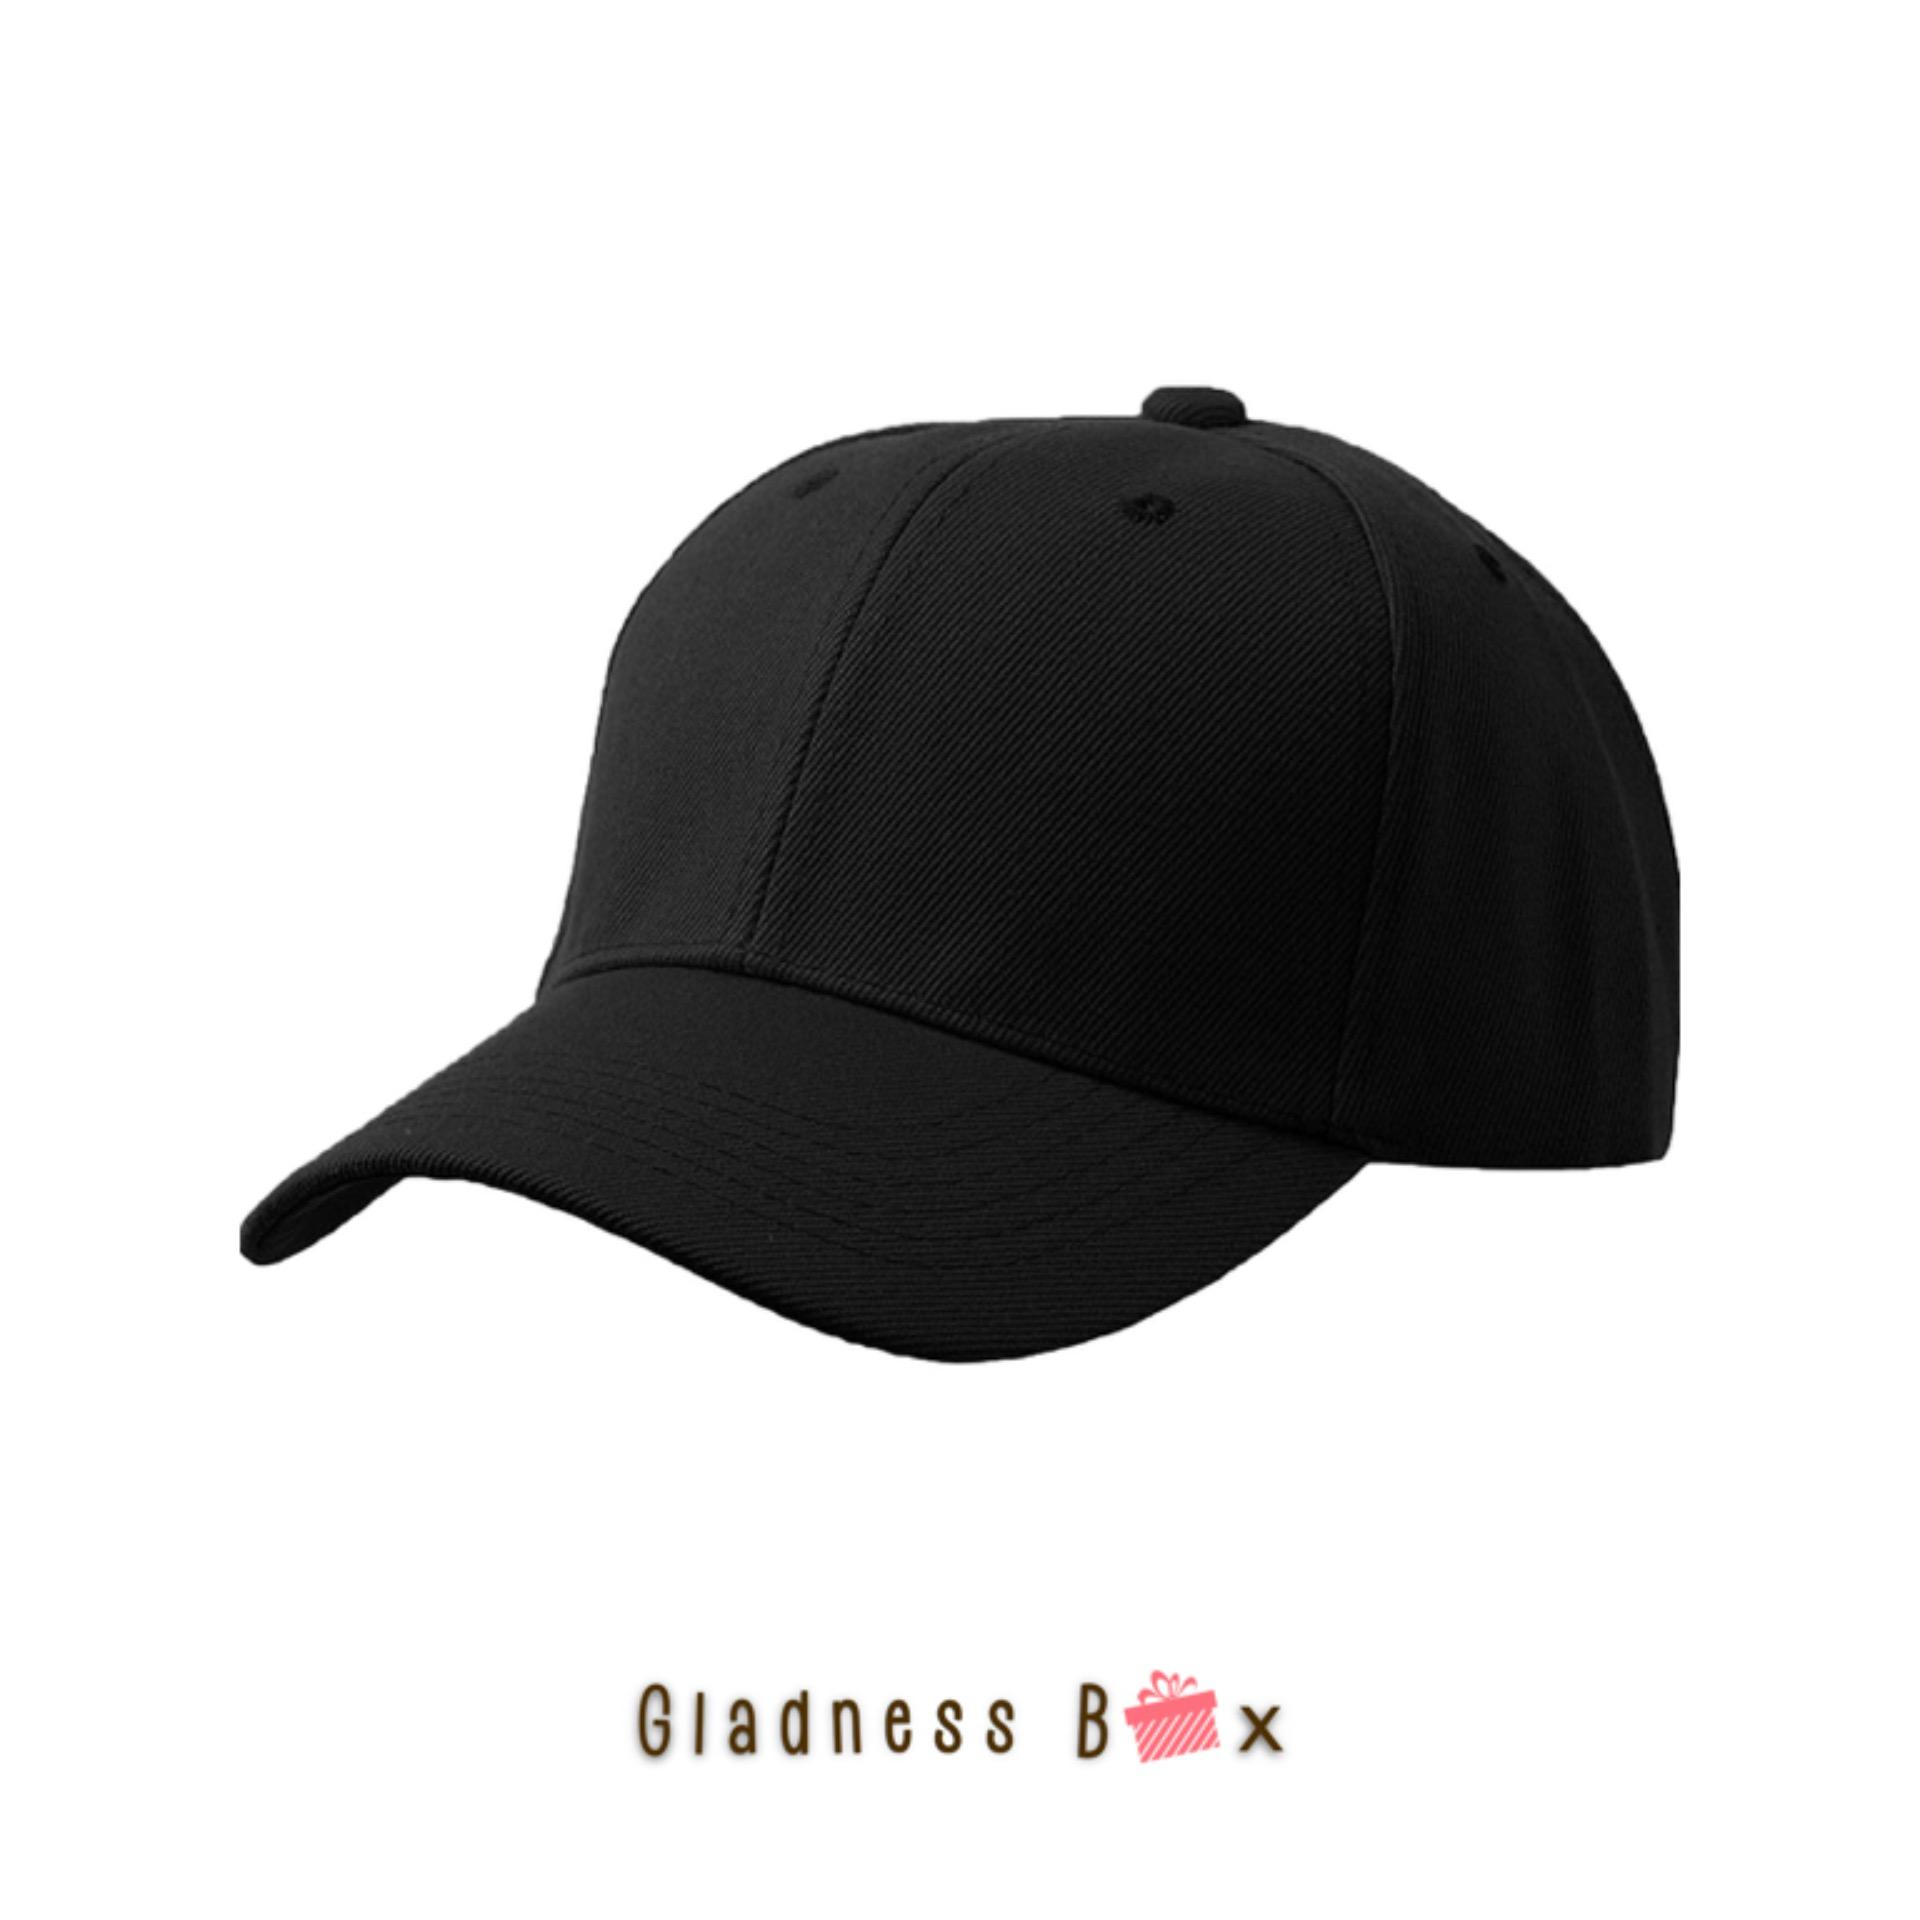 37f1fda73400 Gladness Box High Quality Plain Baseball Cap for Men Women Unisex